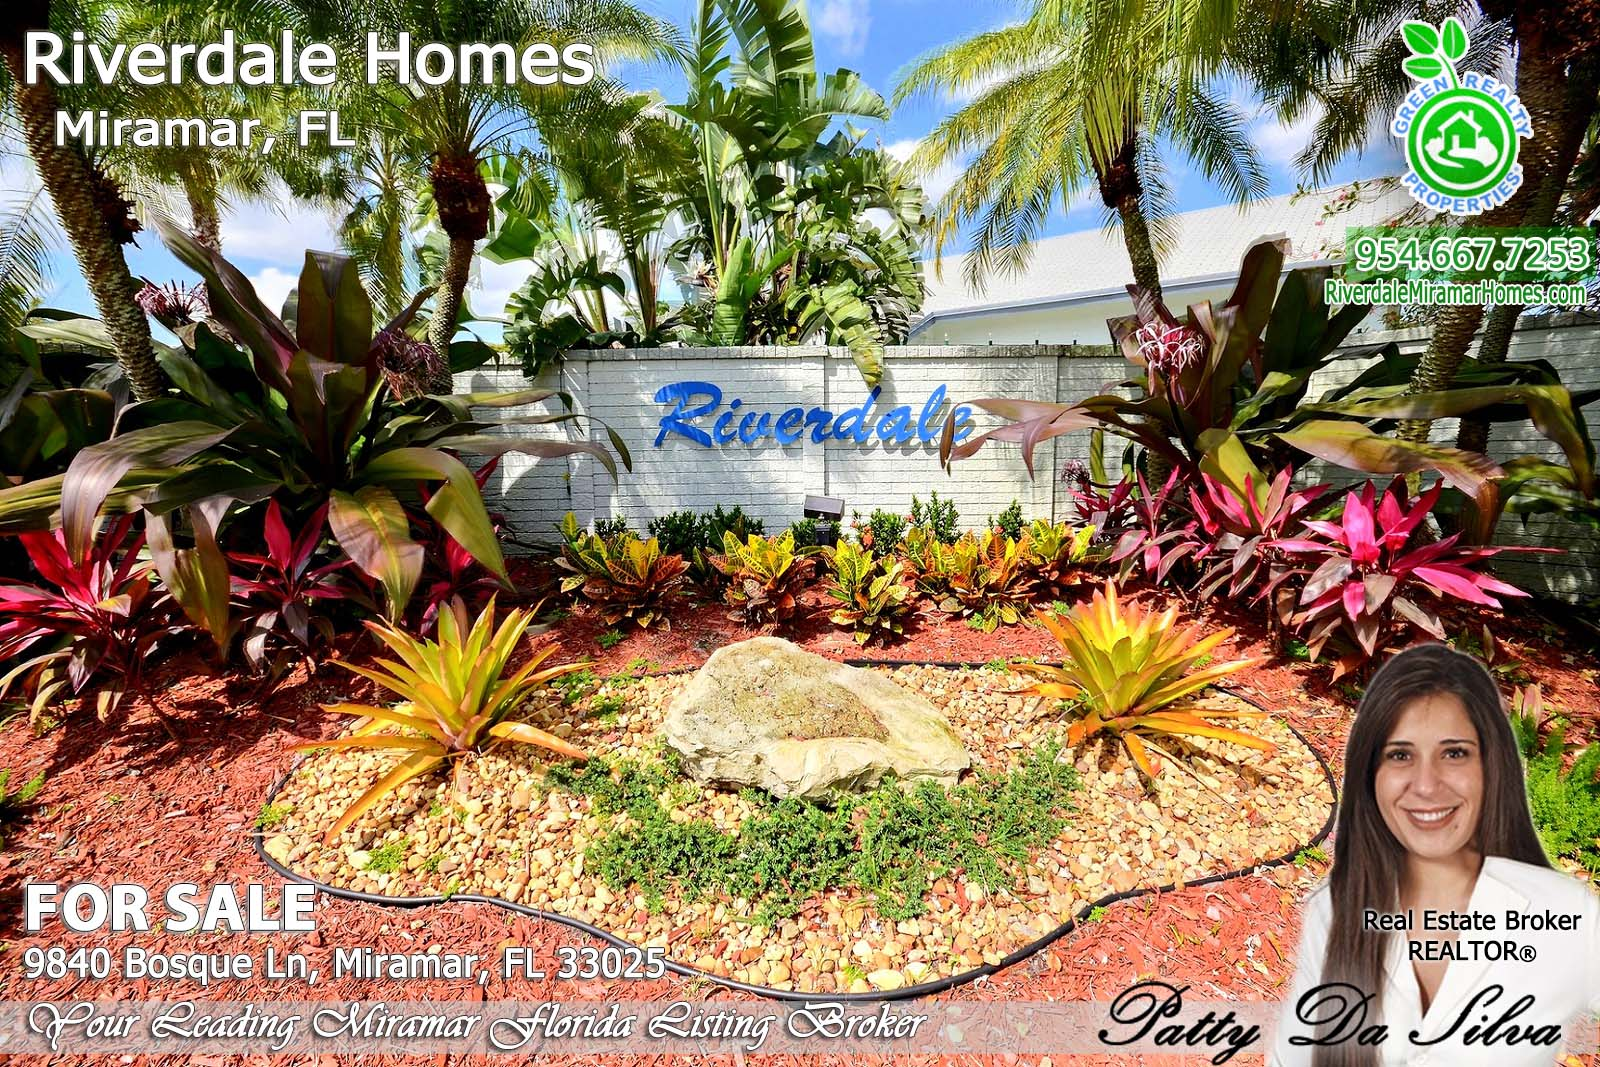 Riverdale Homes For Sale in Miramar Florida - 9840 Bosque Lane (28)